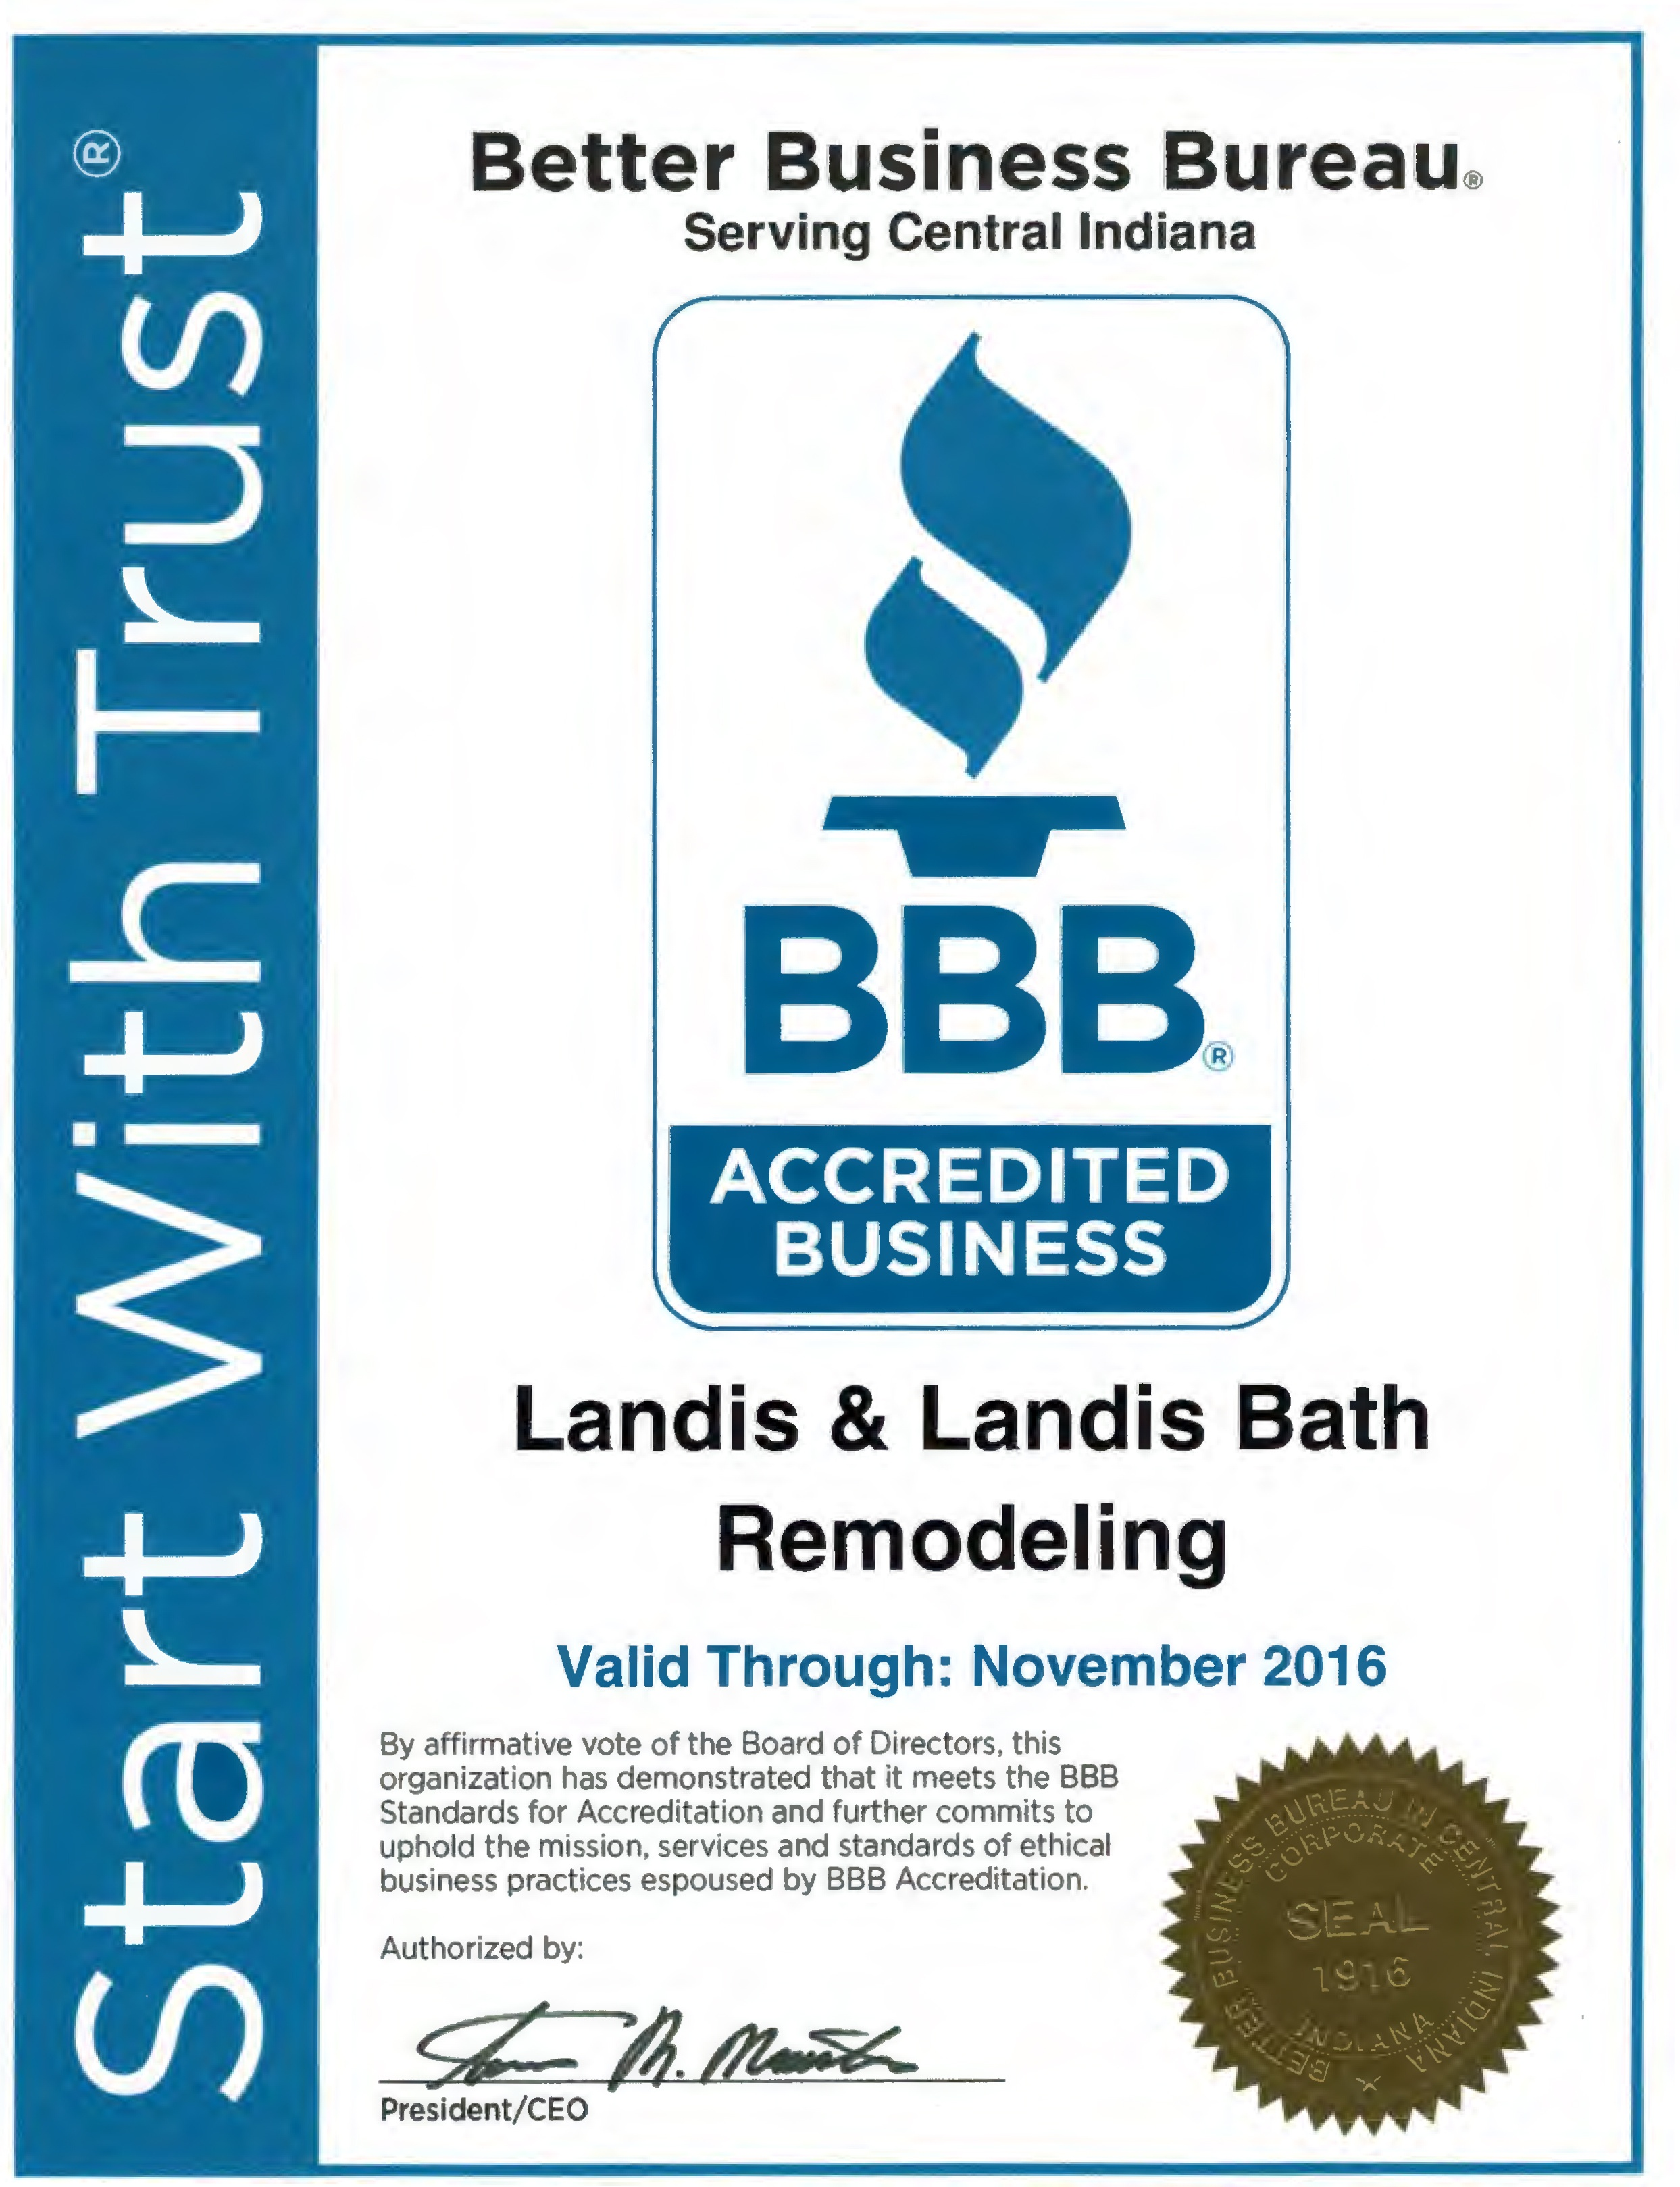 Landis and Landis Baths  Landis and Landis Baths is a bathroom remodeling  company based in Indianapolis. Landis and Landis Bathroom Remodeling   Indianapolis  IN